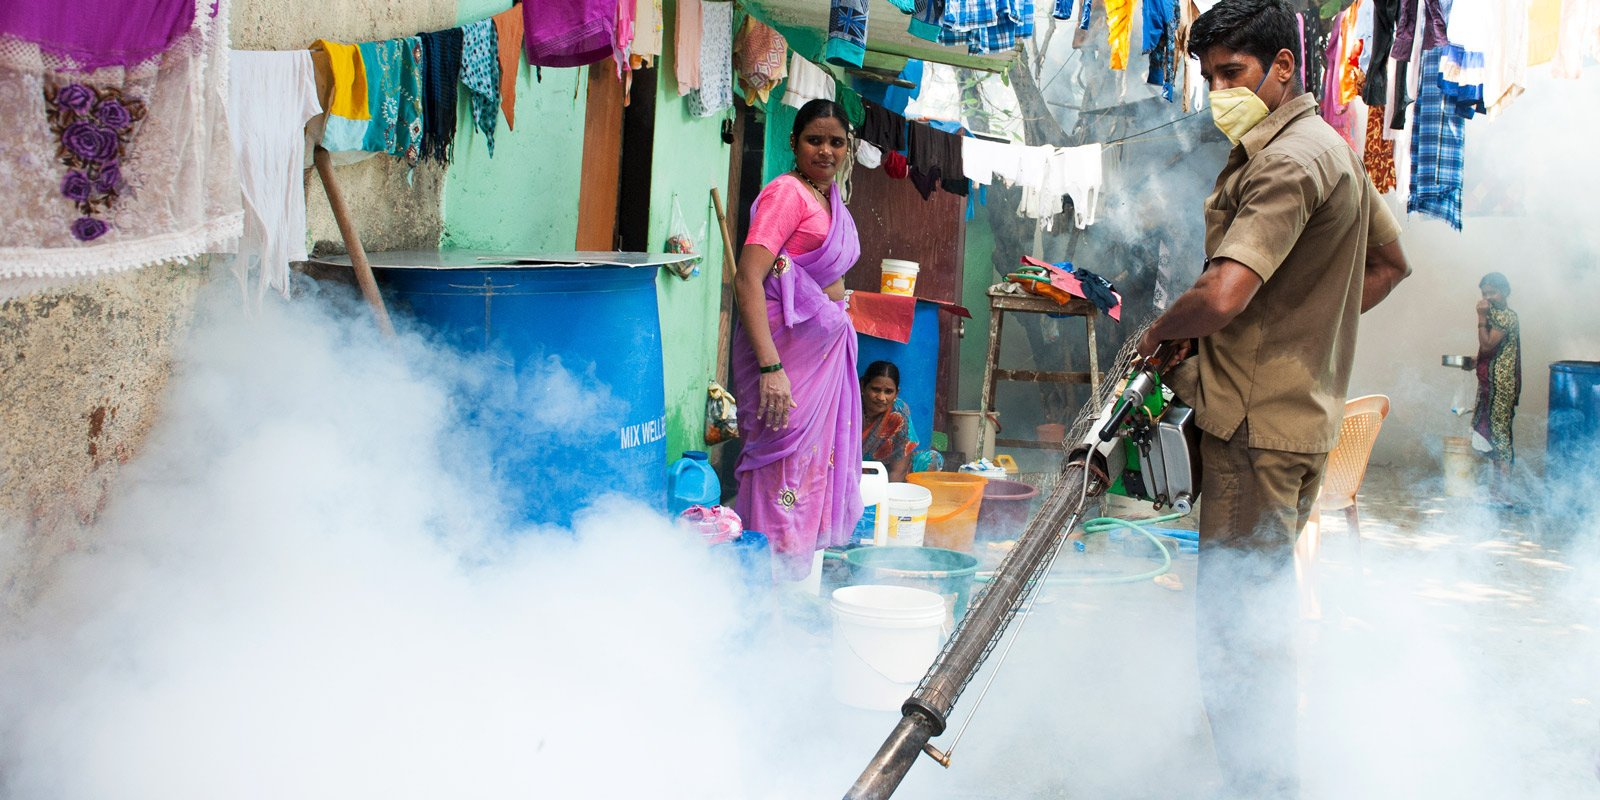 Spraying for mosquitoes in India